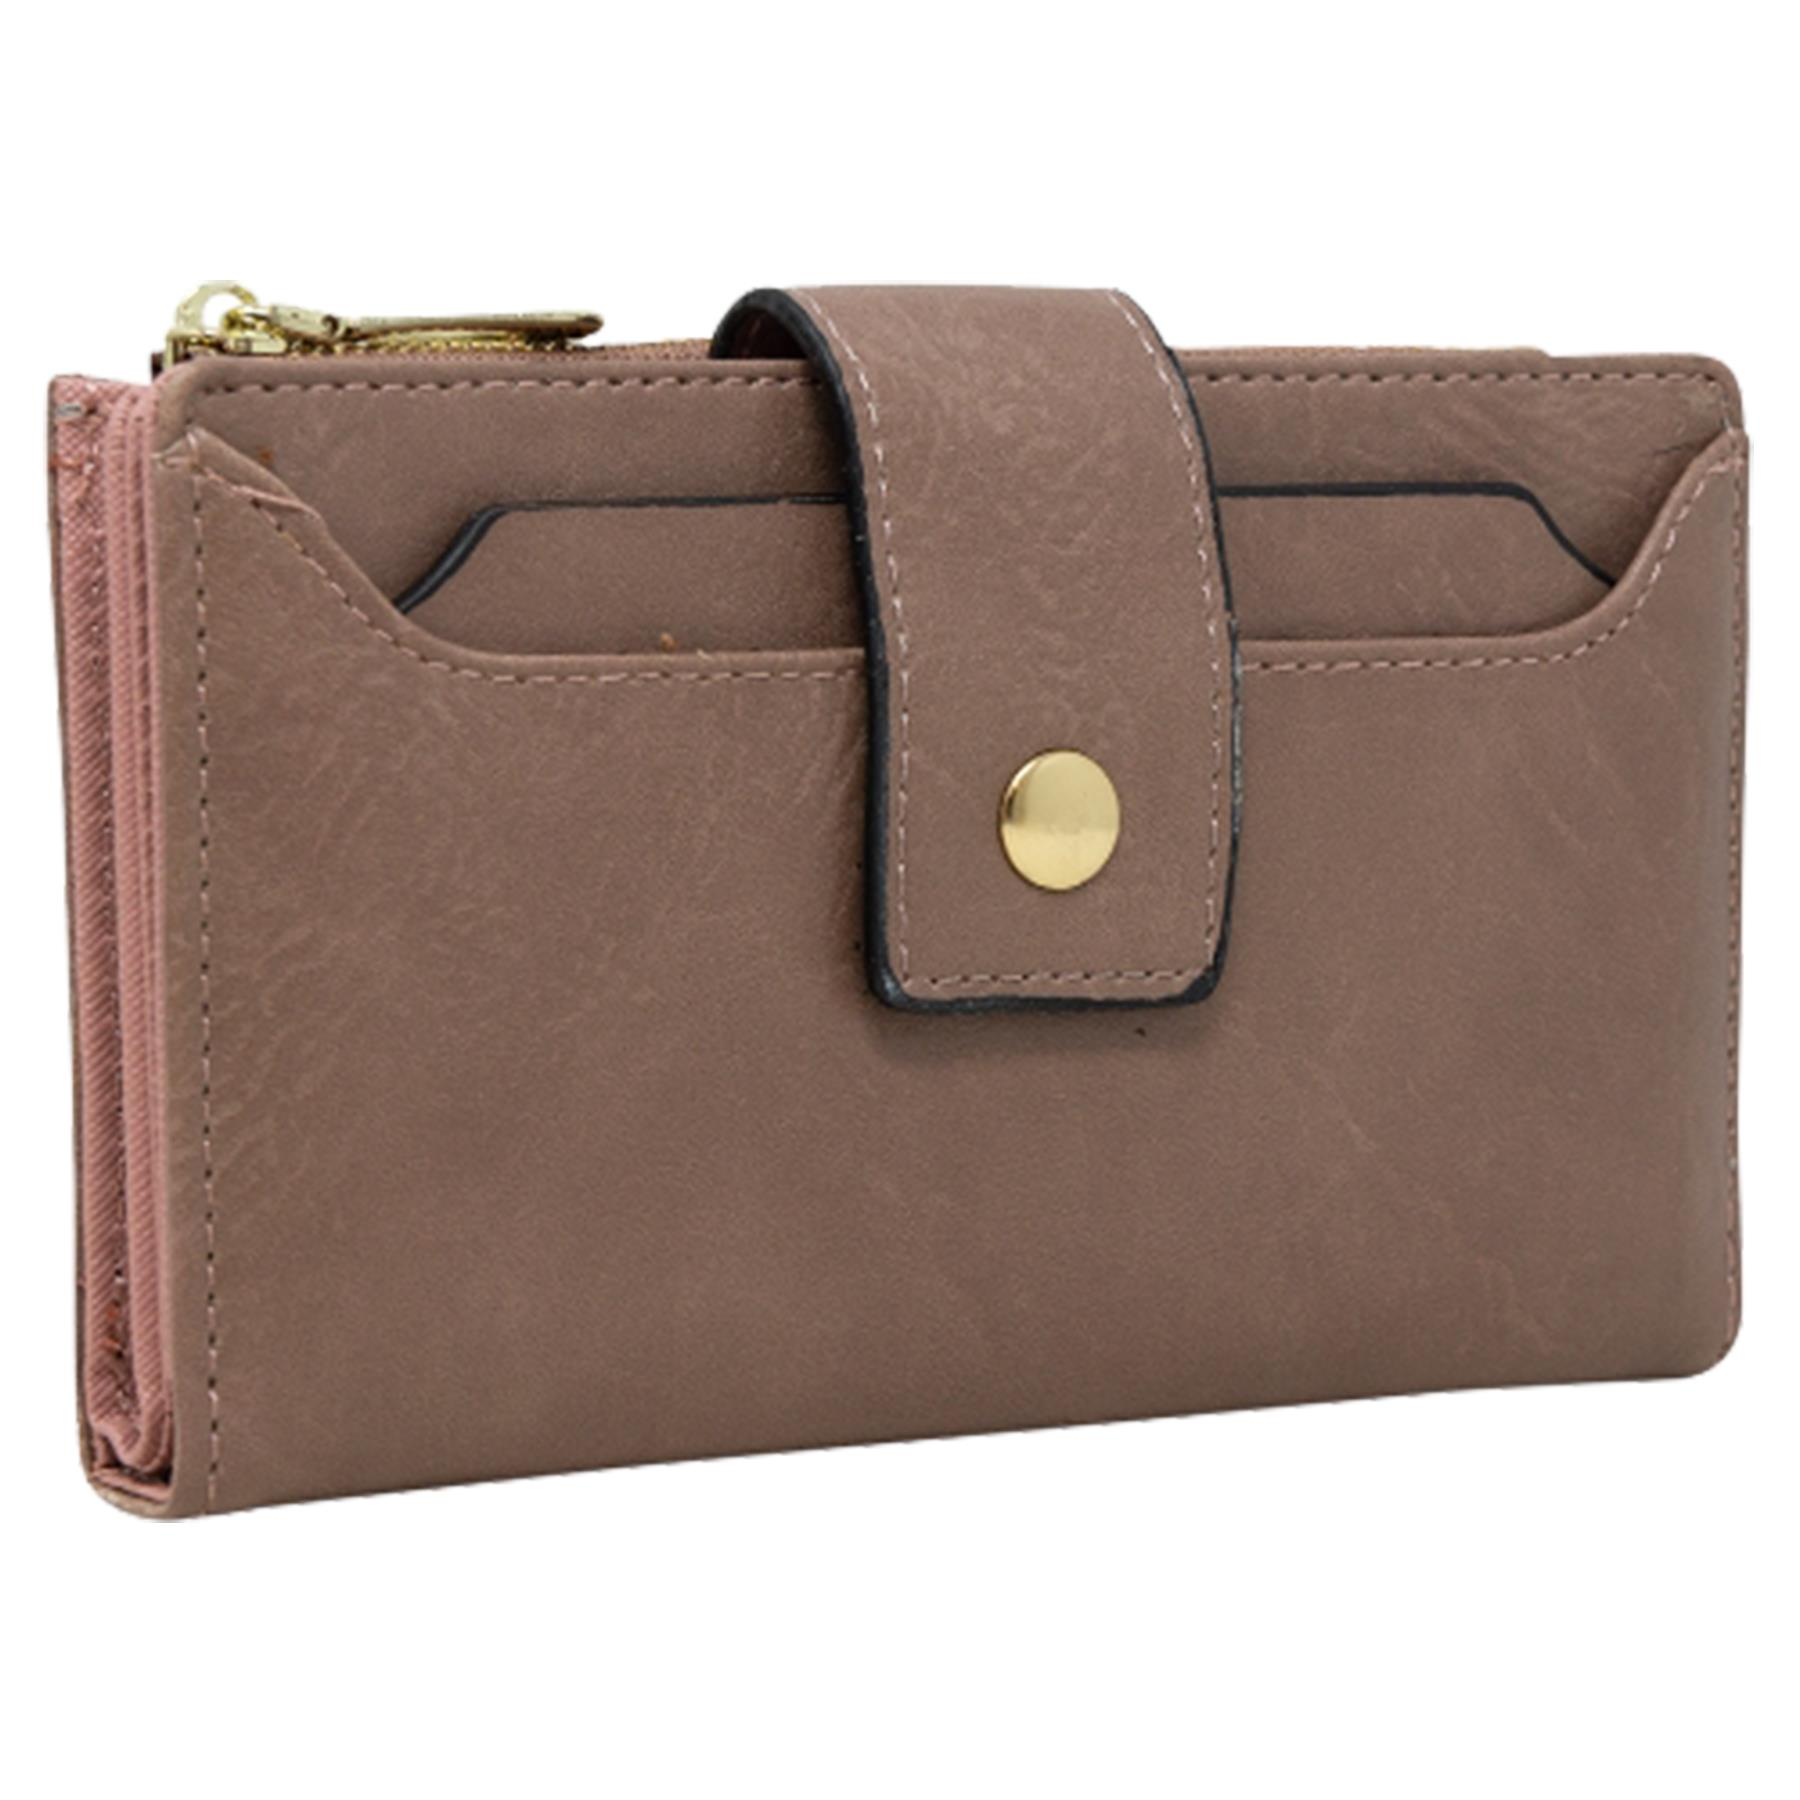 New-Soft-Plain-Synthetic-Leather-Card-Organiser-Ladies-Long-Purse thumbnail 19